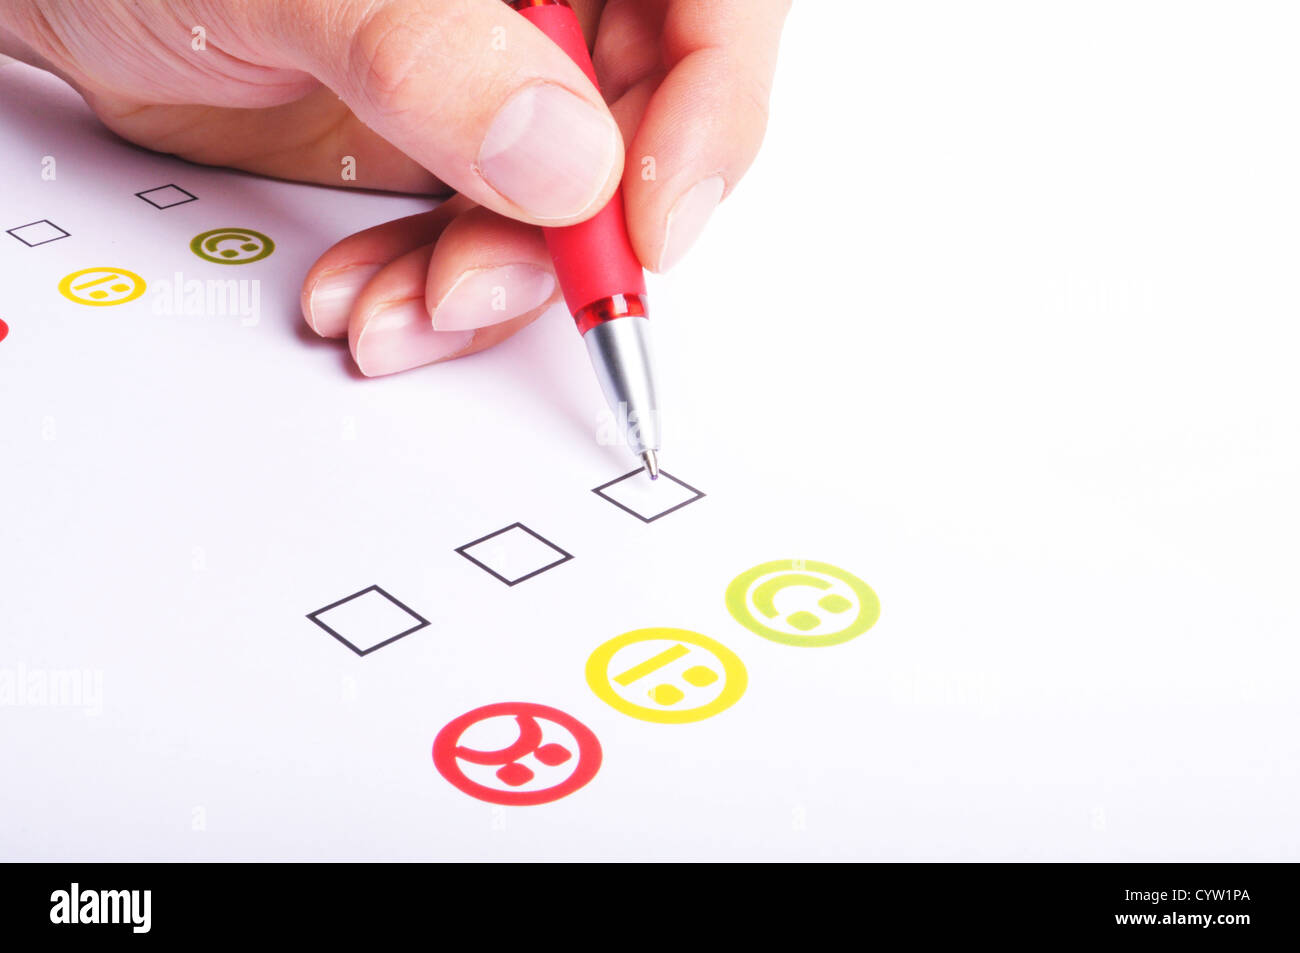 Customer Satisfaction Questionnaire Showing Marketing Or Business Customer Satisfaction Questionnaire Showing Marketing Or Business CYWPA Stock Photo Customer Satisfaction Questionnaire Showing Marketing Or Business